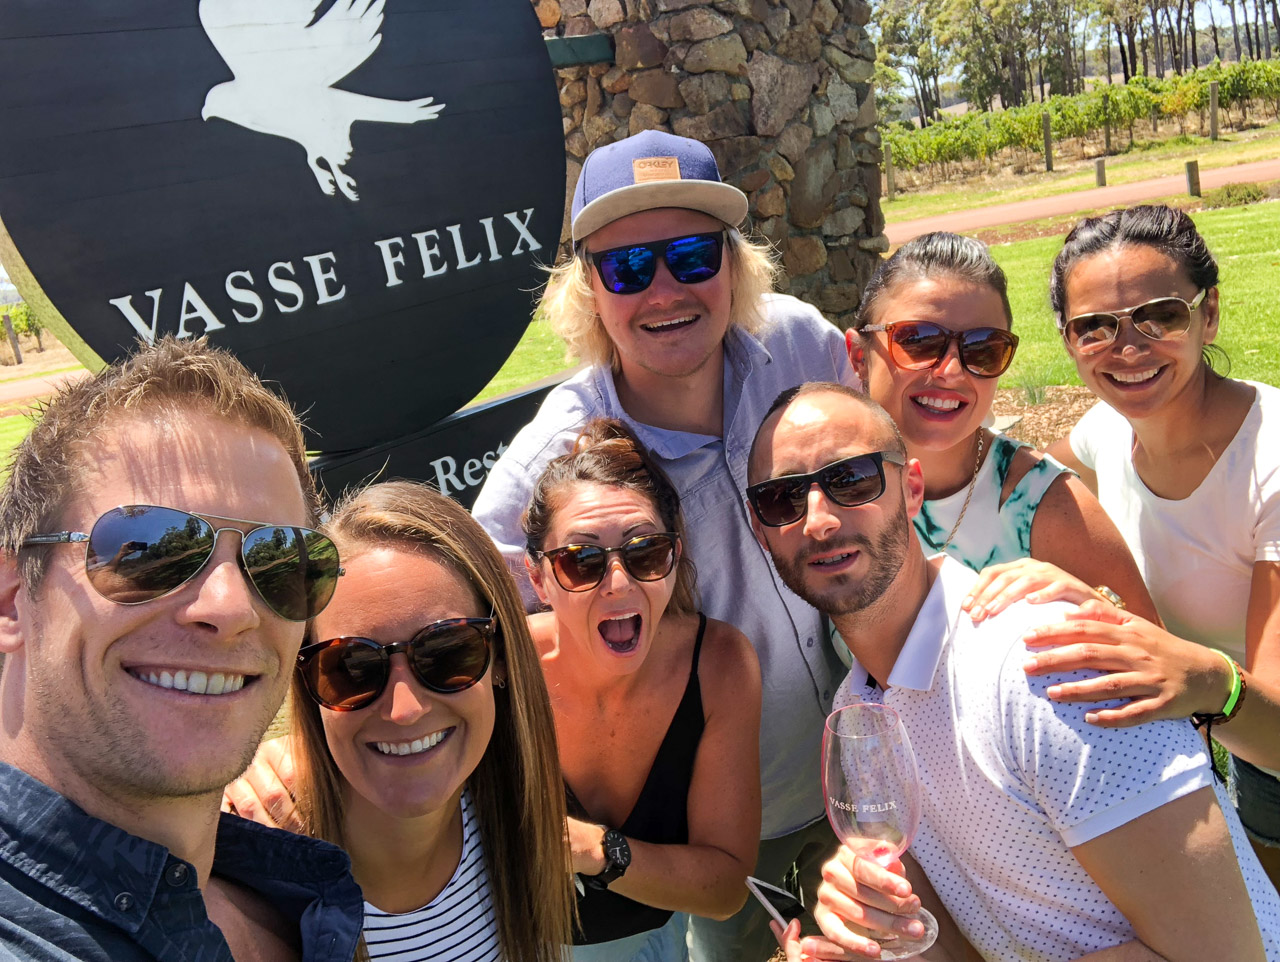 Vasse Felix Wine Tour Group